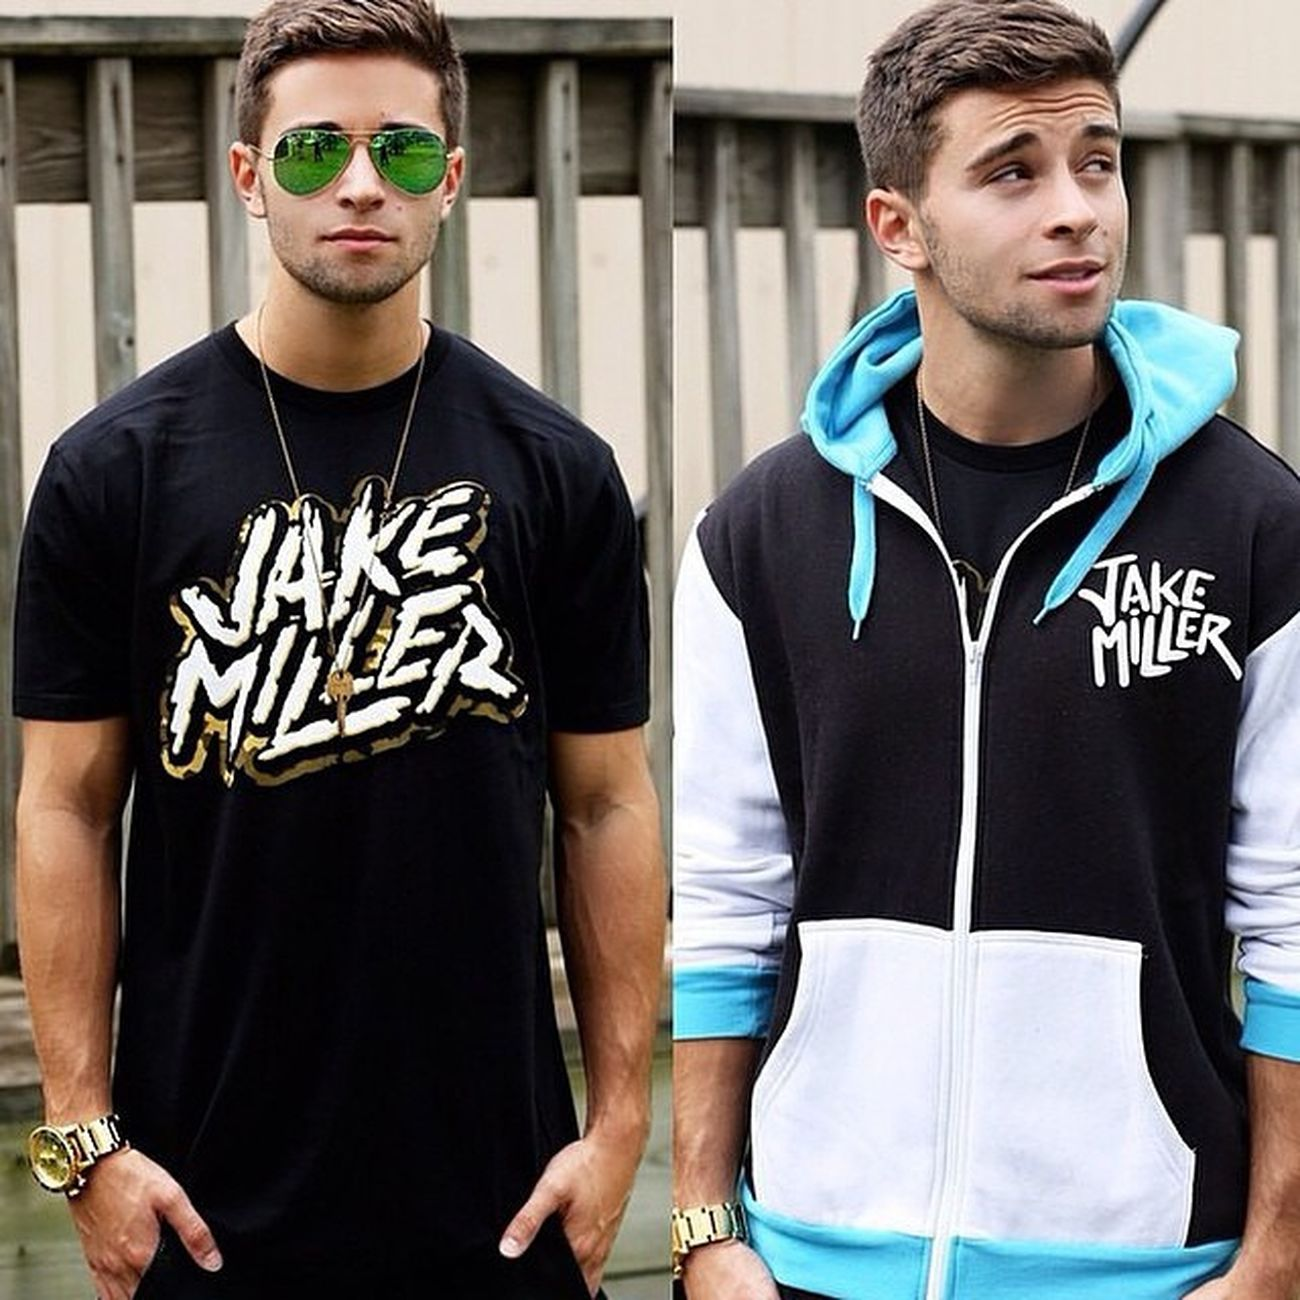 @jakemillermusic New Merch!:D Happy Military Monday! I need this! Jakemiller JakeMillerMusic MilitaryMonday